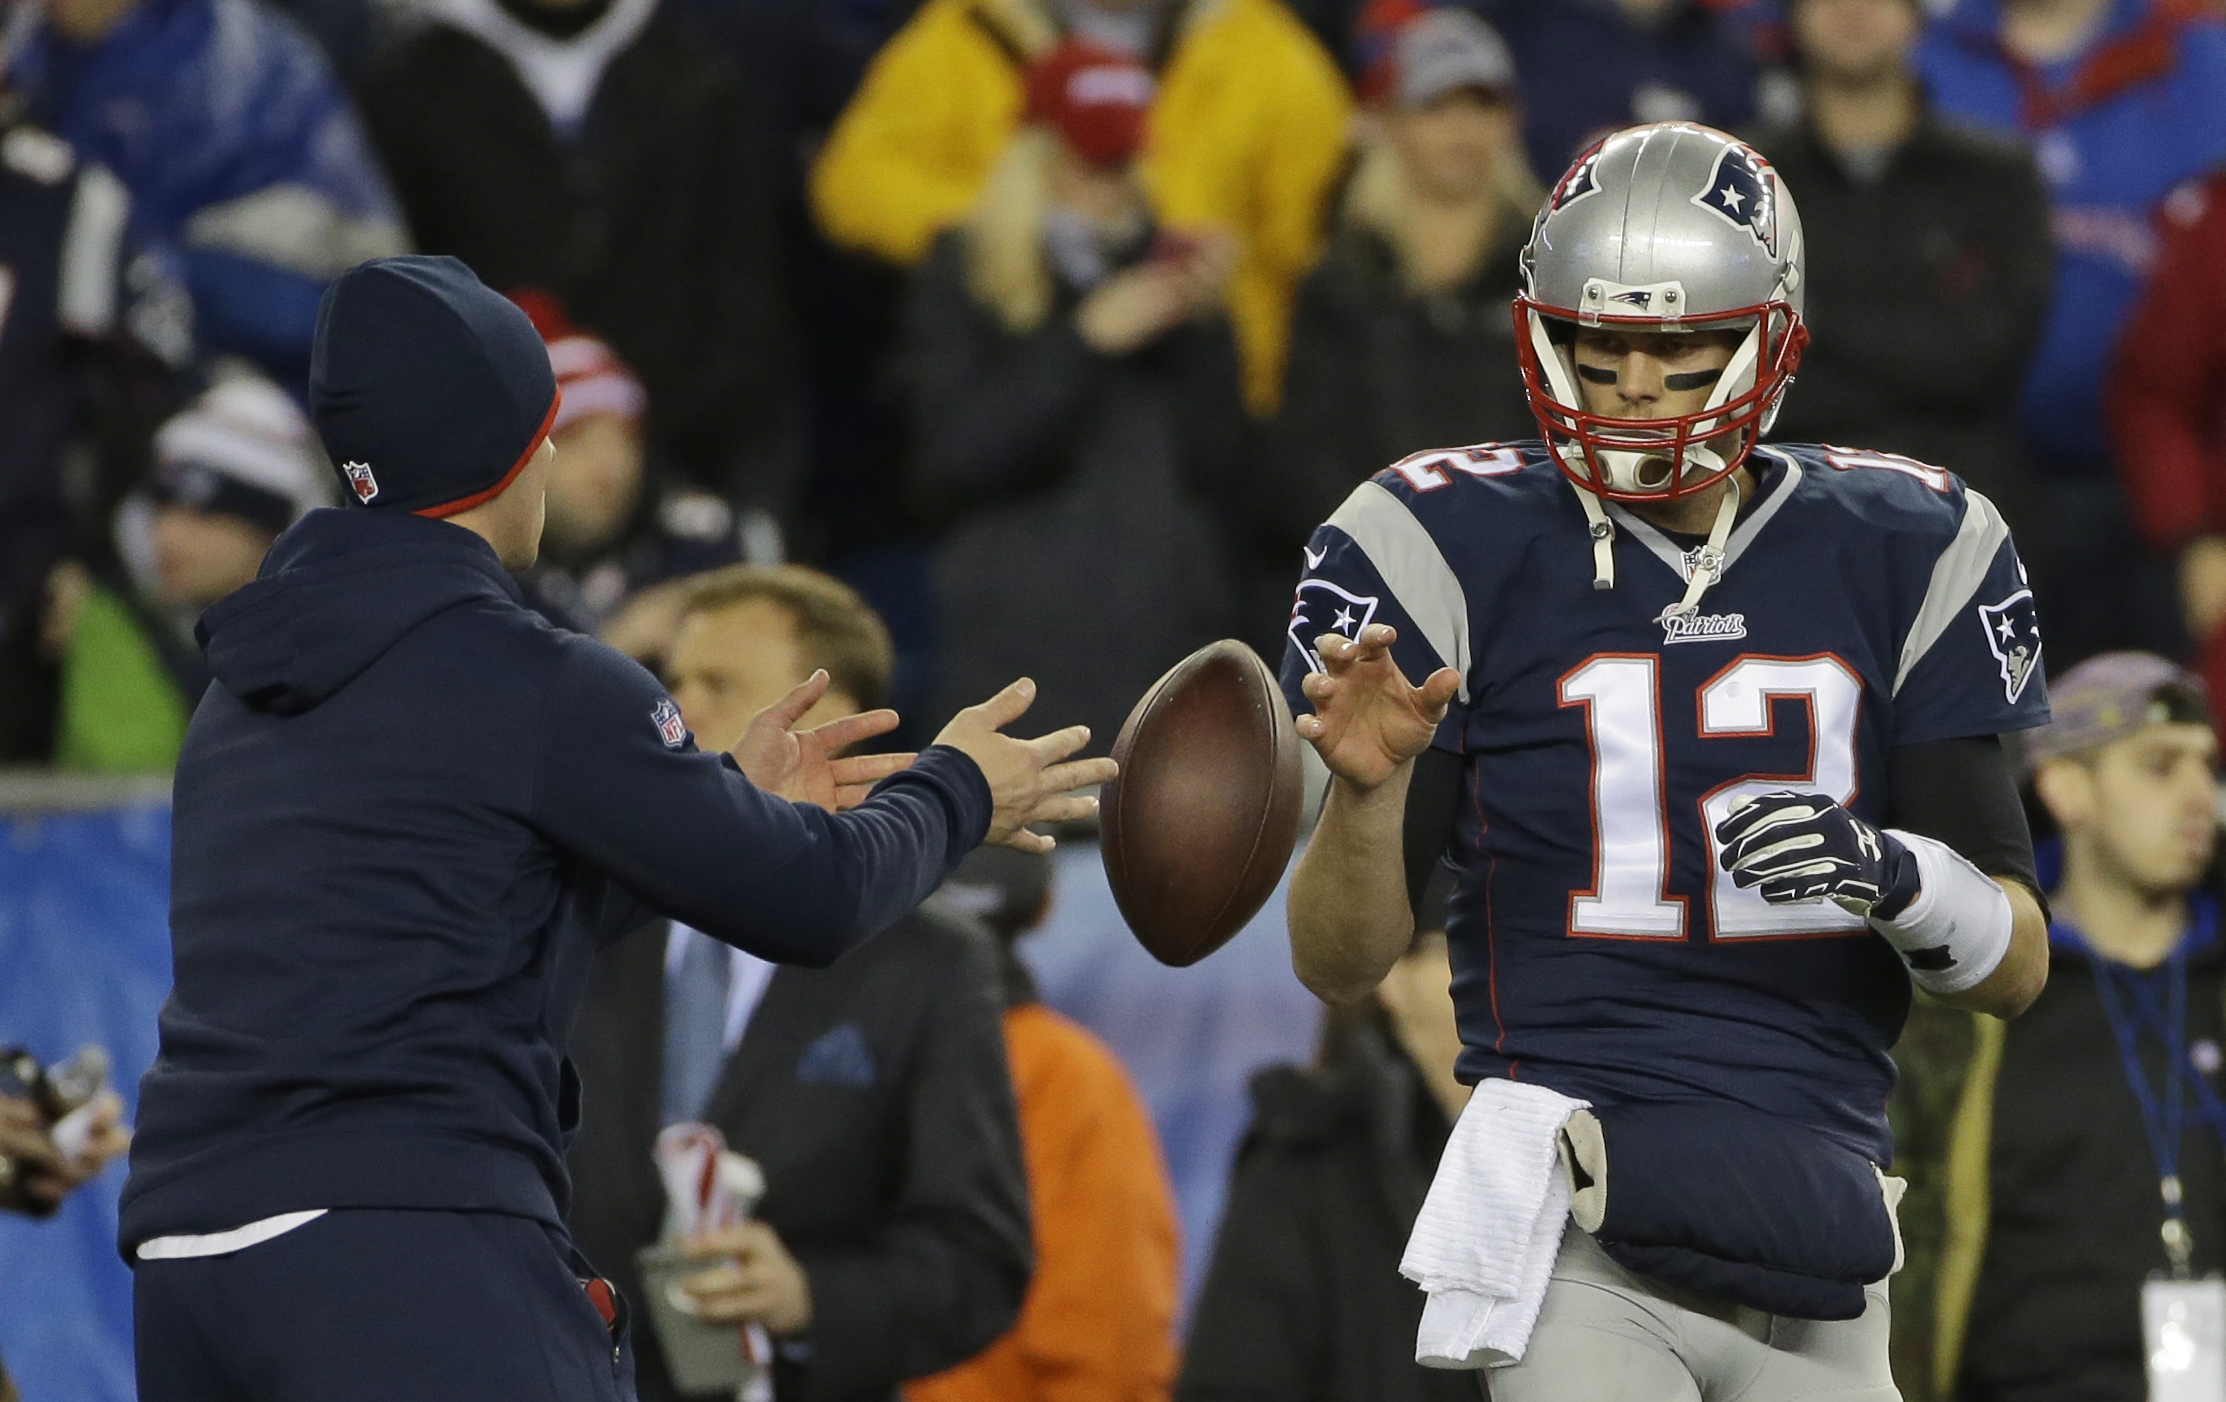 FILE - In this Jan. 18, 2015, file photo, New England Patriots quarterback Tom Brady has a ball tossed to him during warmups before the NFL football AFC Championship game against the Indianapolis Colts in Foxborough, Mass. Tom Brady is expected to file an